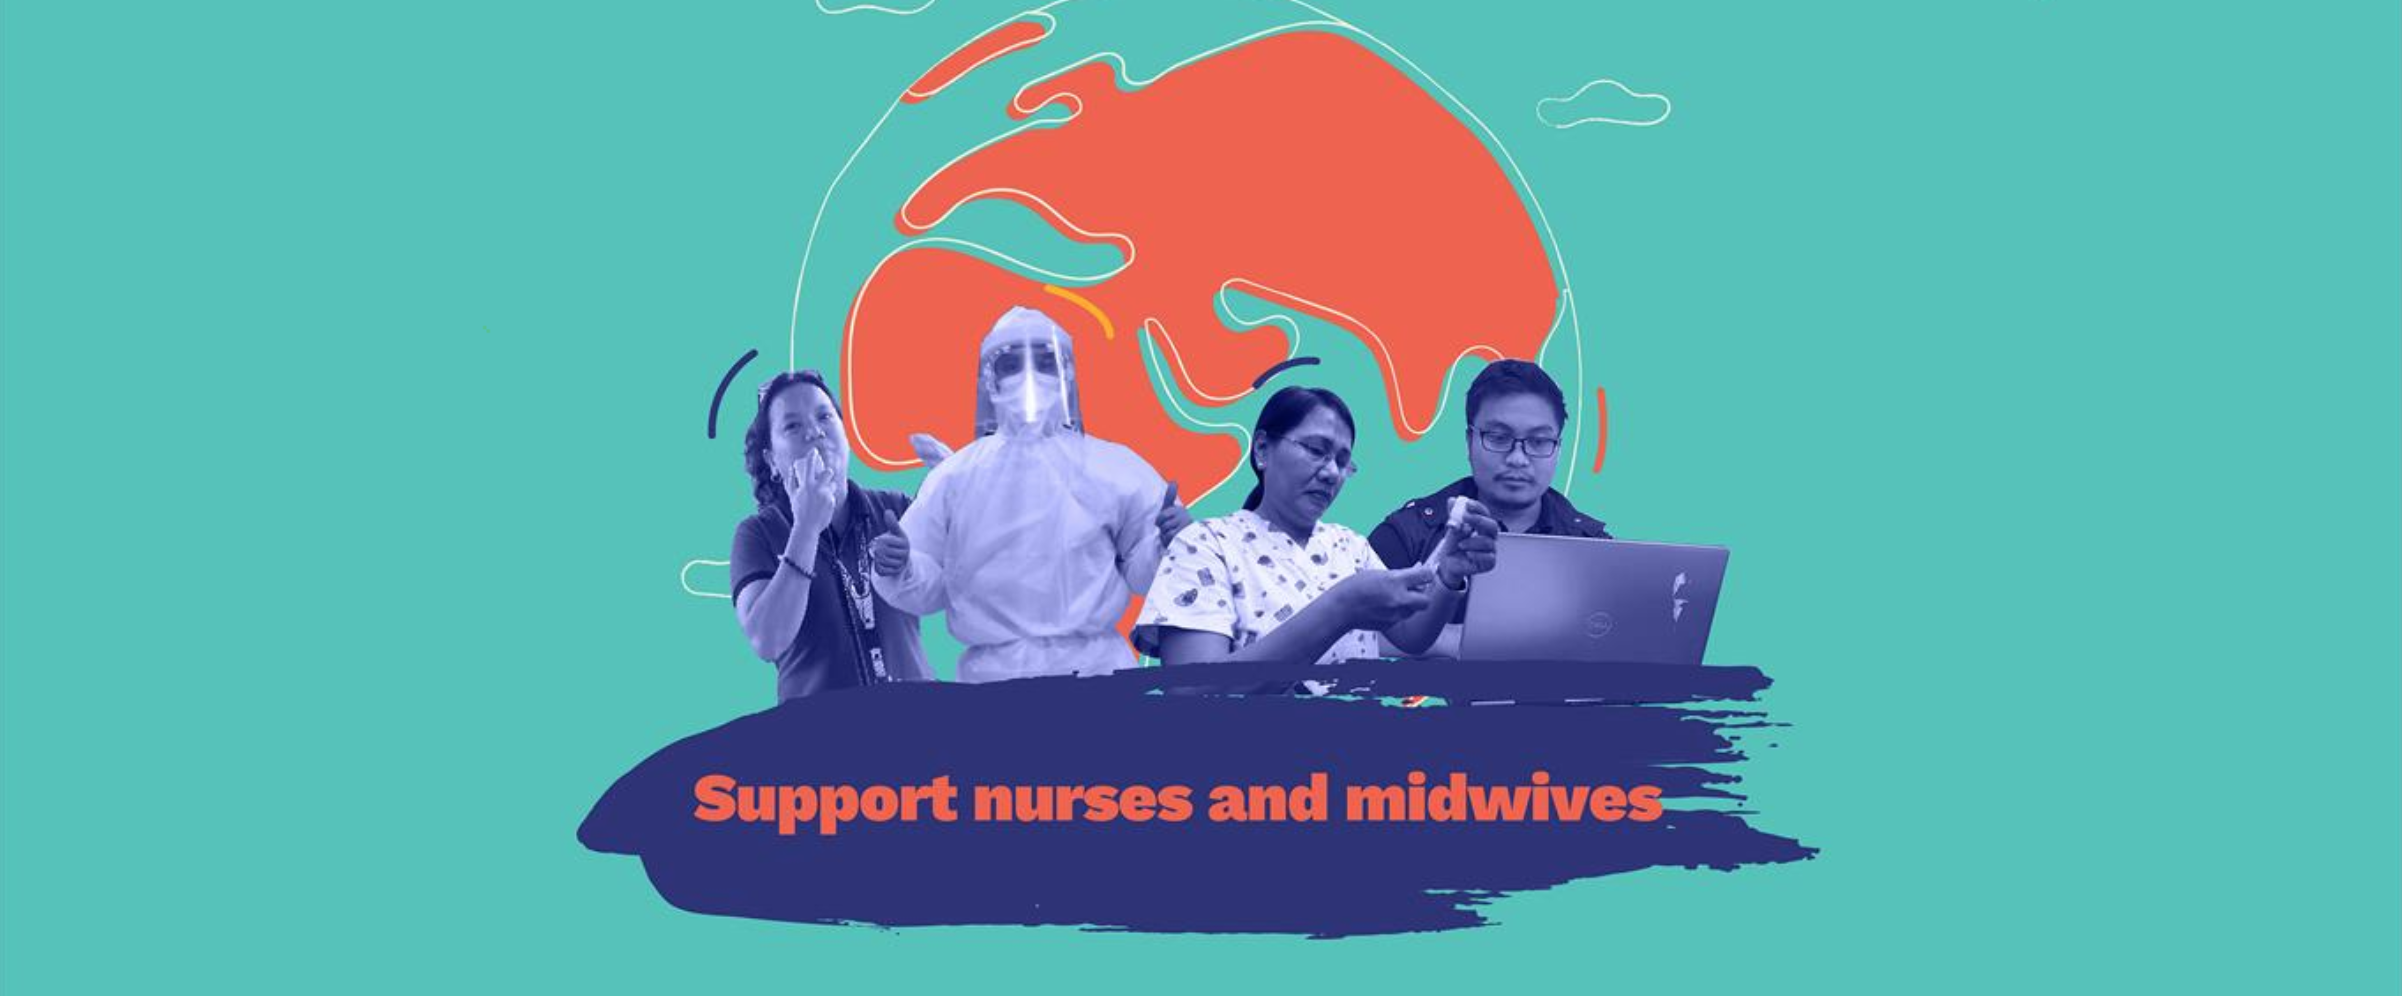 Celebrating nurses and midwives responding to the COVID-19 pandemic